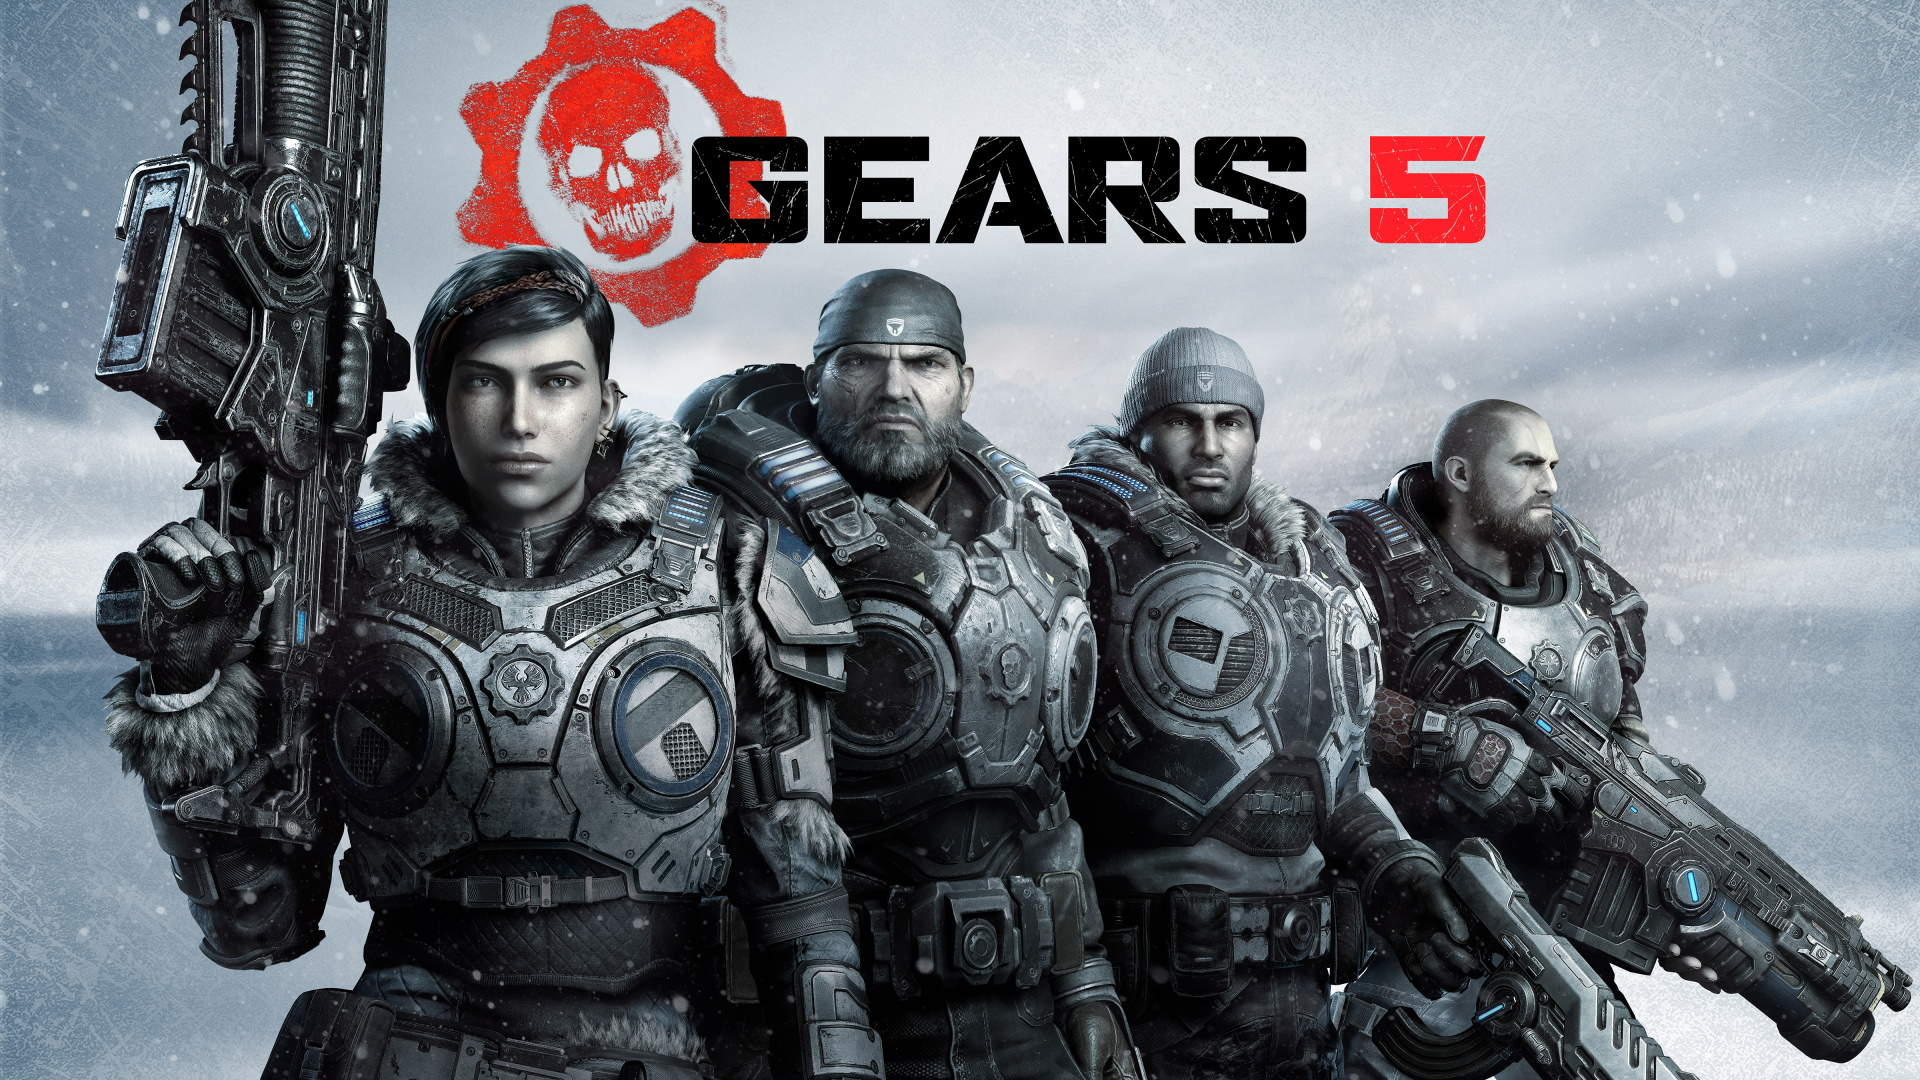 [FPS Benchmarks] Gears 5 on NVIDIA GeForce RTX 3080 (130W) and RTX 3070 (130W) – the RTX 3080 is 10% faster